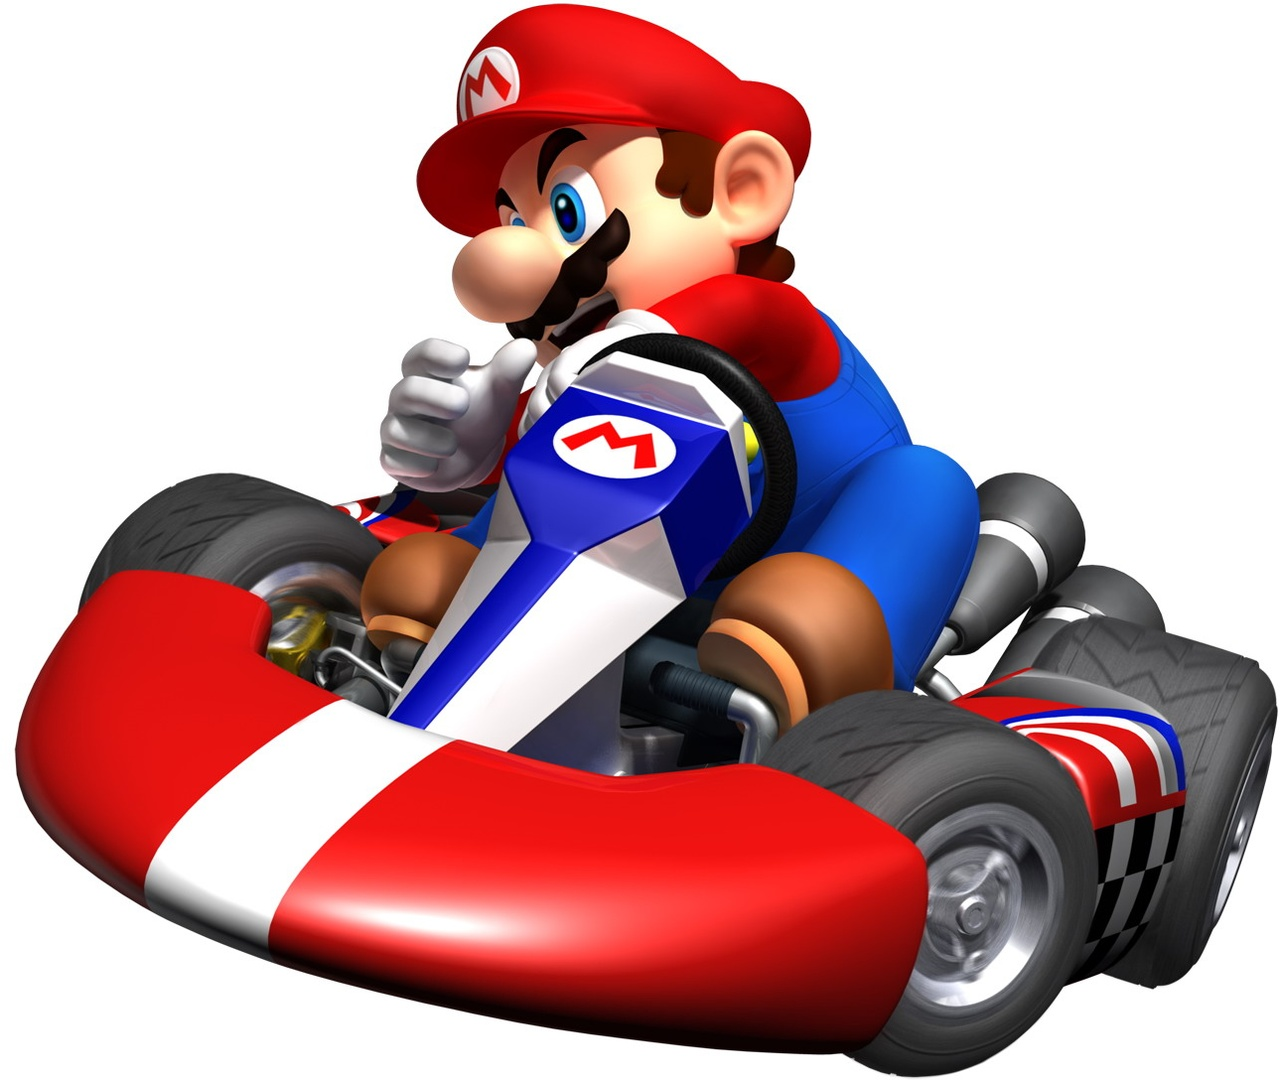 We will have a Mario Kart activity!